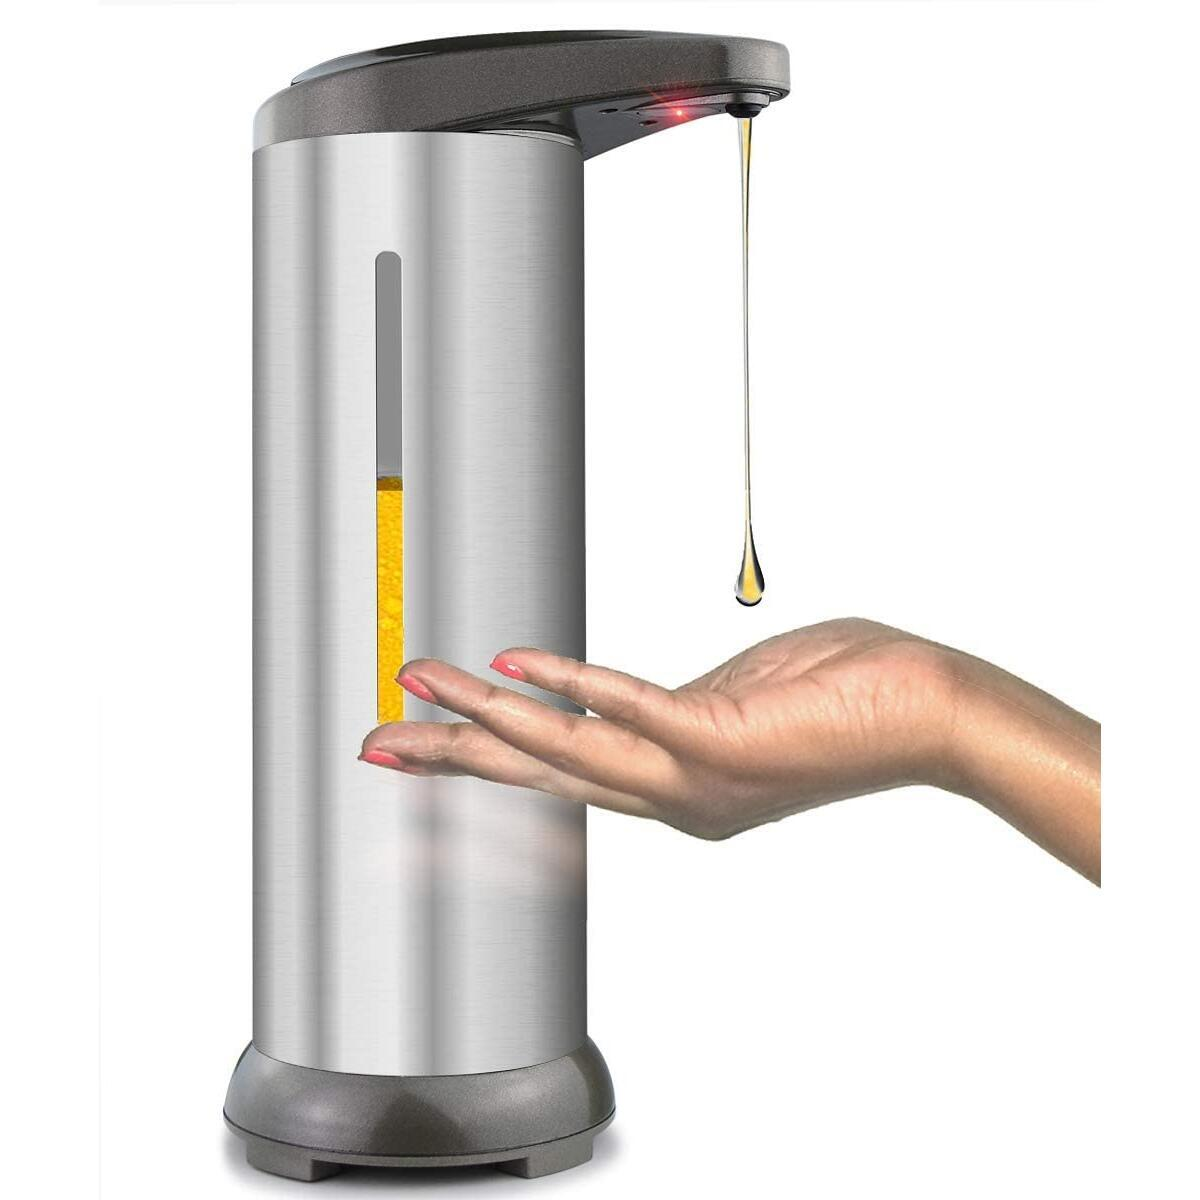 Automatic Soap / Sanitizer Dispenser Stainless Steel